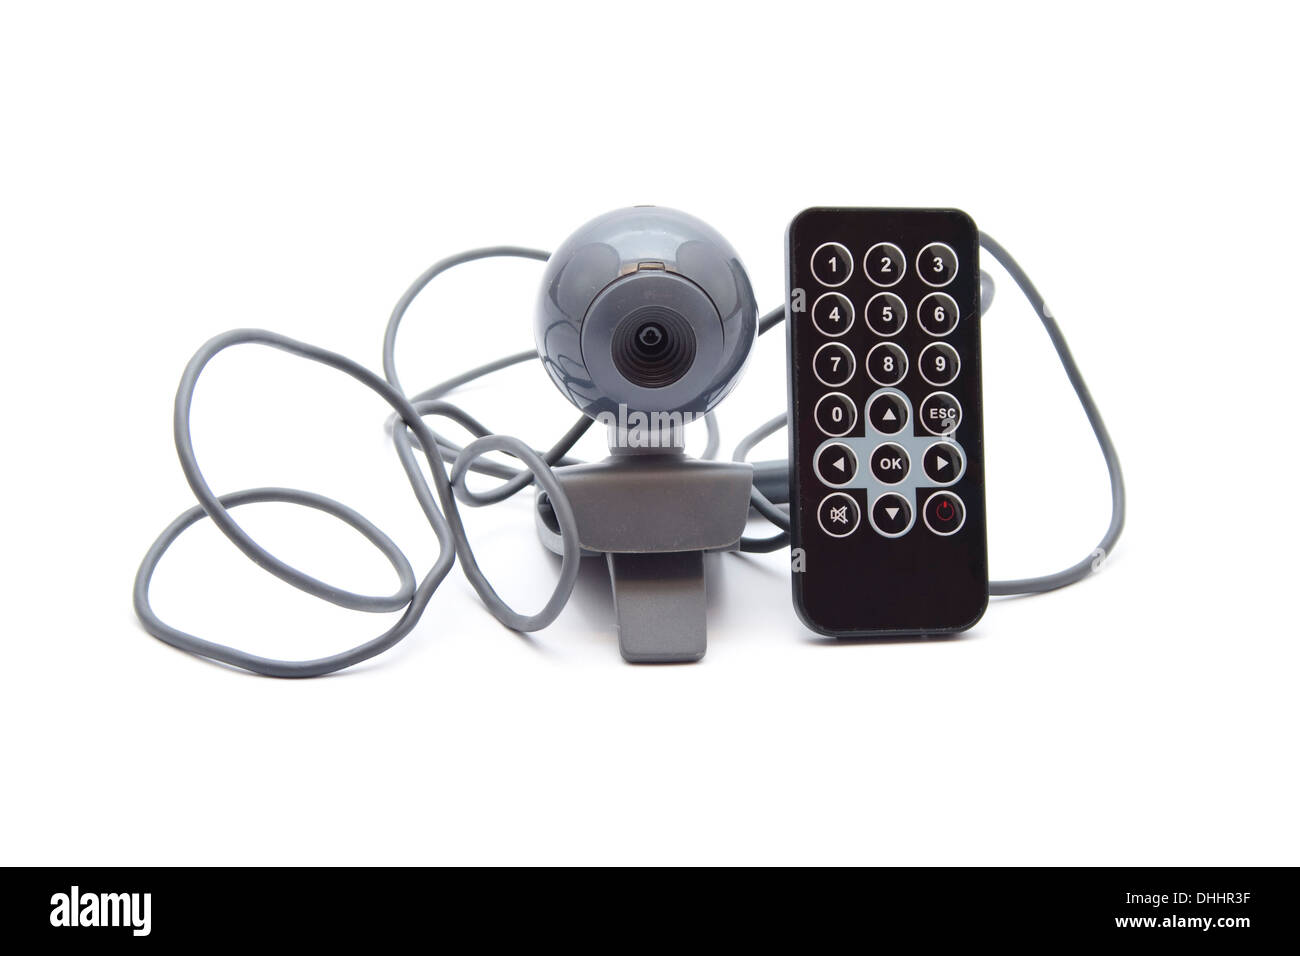 Webcam with Cable and Remote Control Stock Photo: 62471571